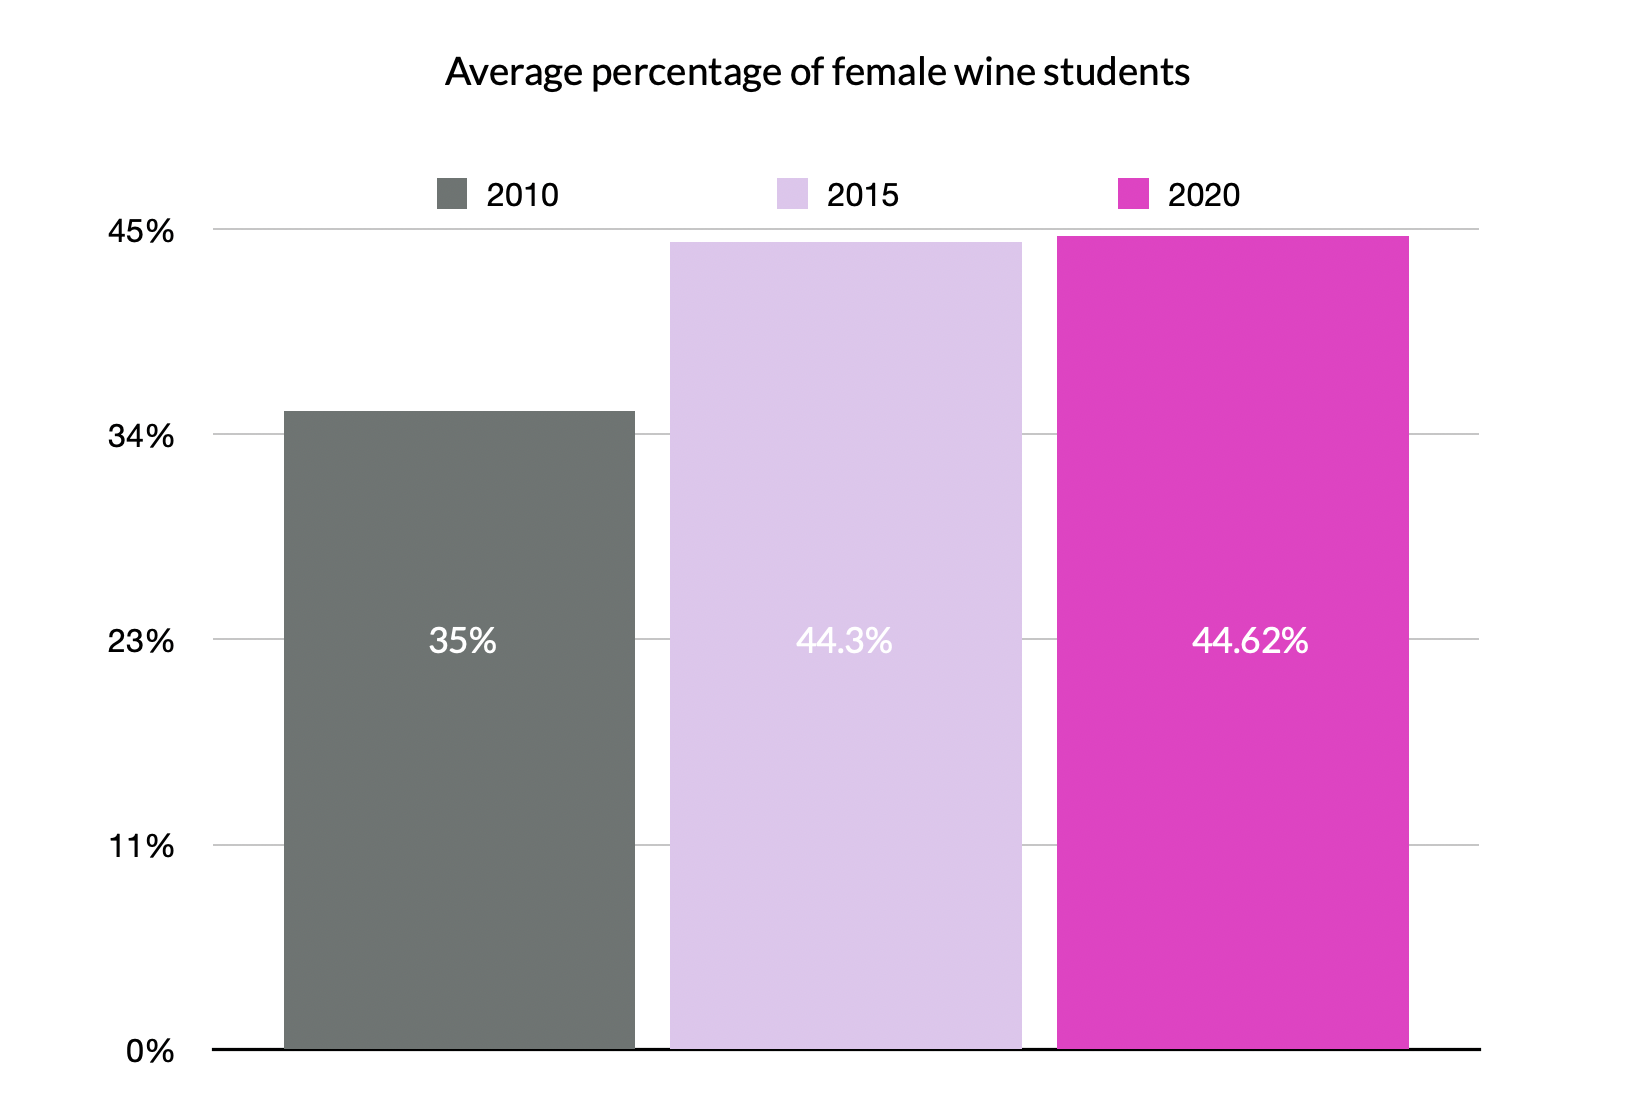 Total female ratios of wine students in 2010, 2015 and 2020